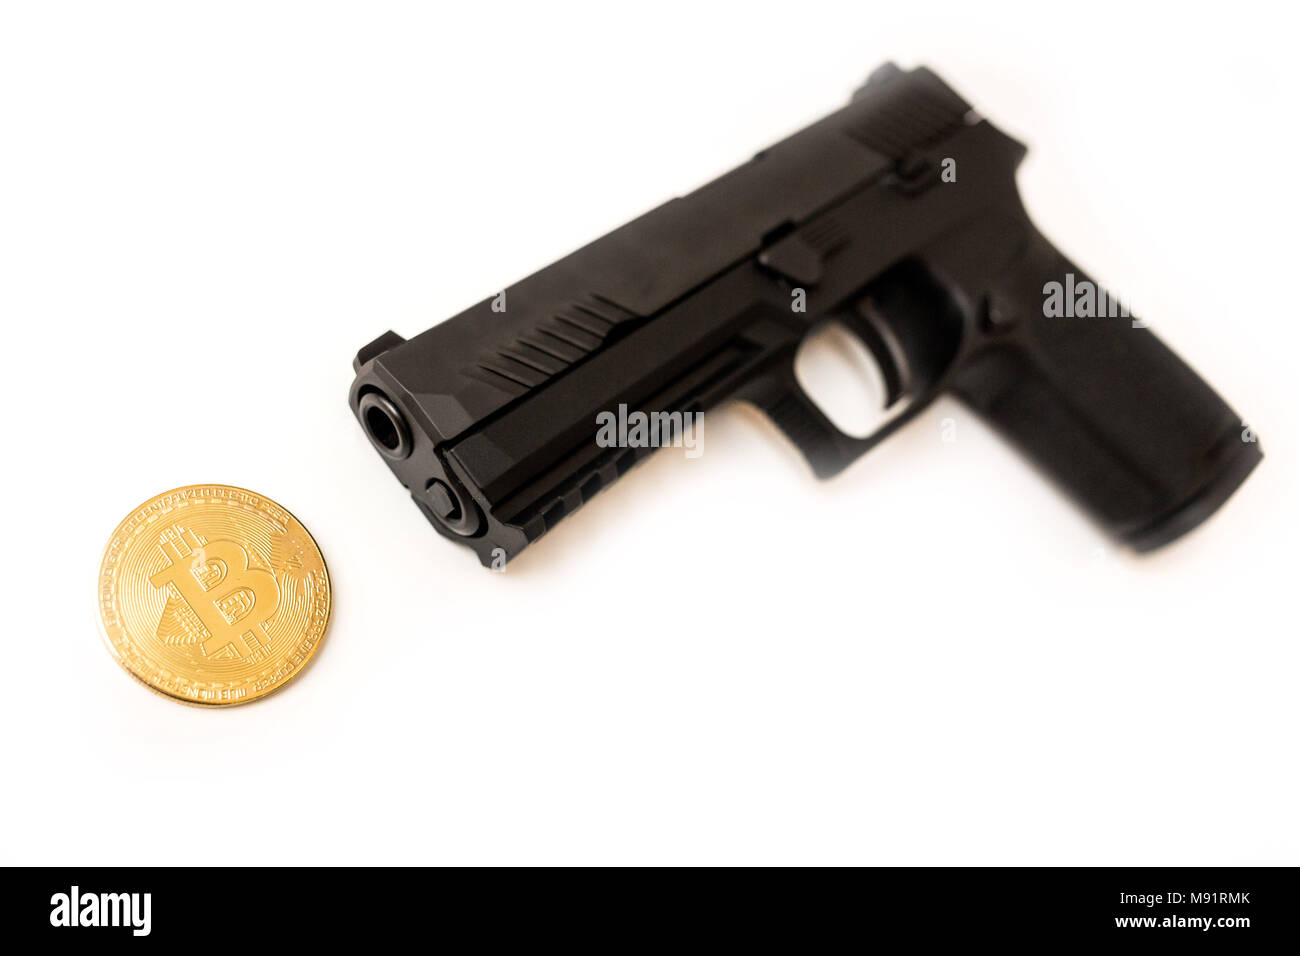 Bitcoin cryptocurrency under a pointing gun theft white background - Stock Image